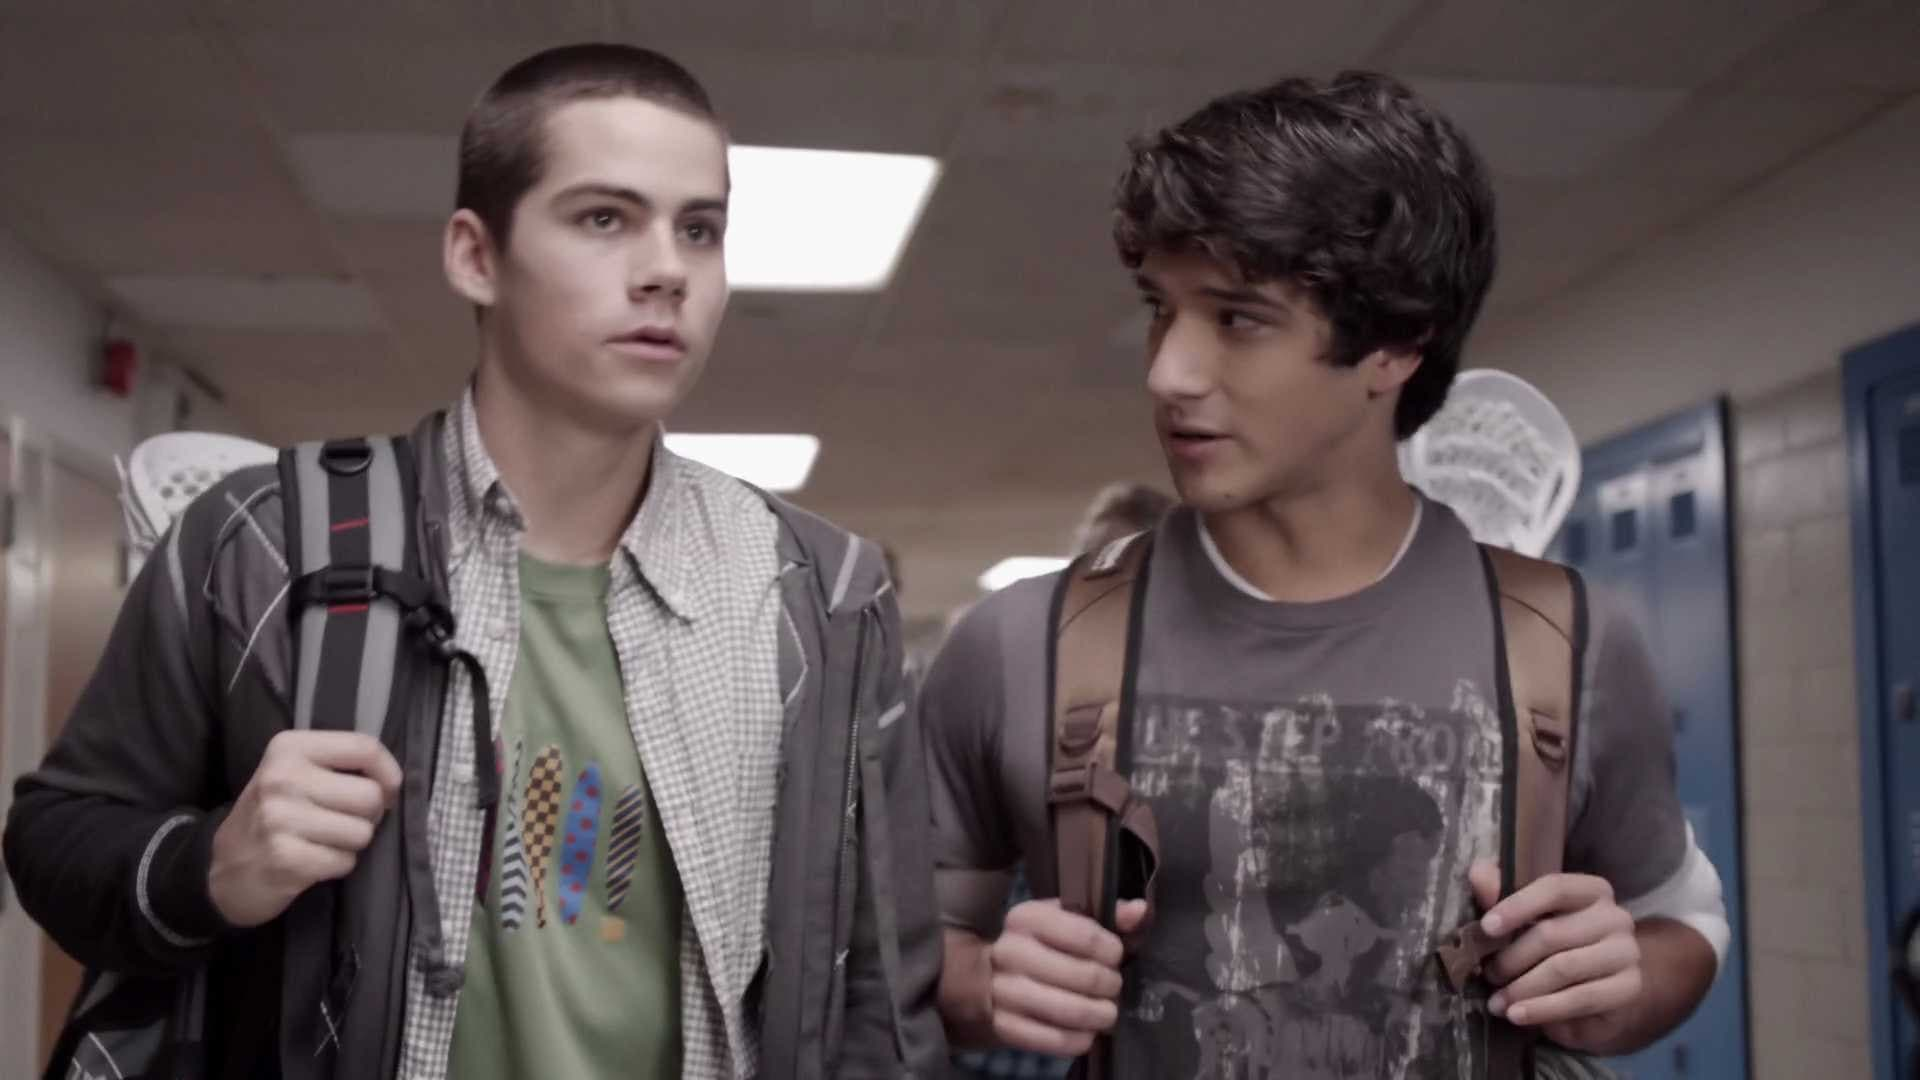 Where can I download the full Teen Wolf series? - Quora